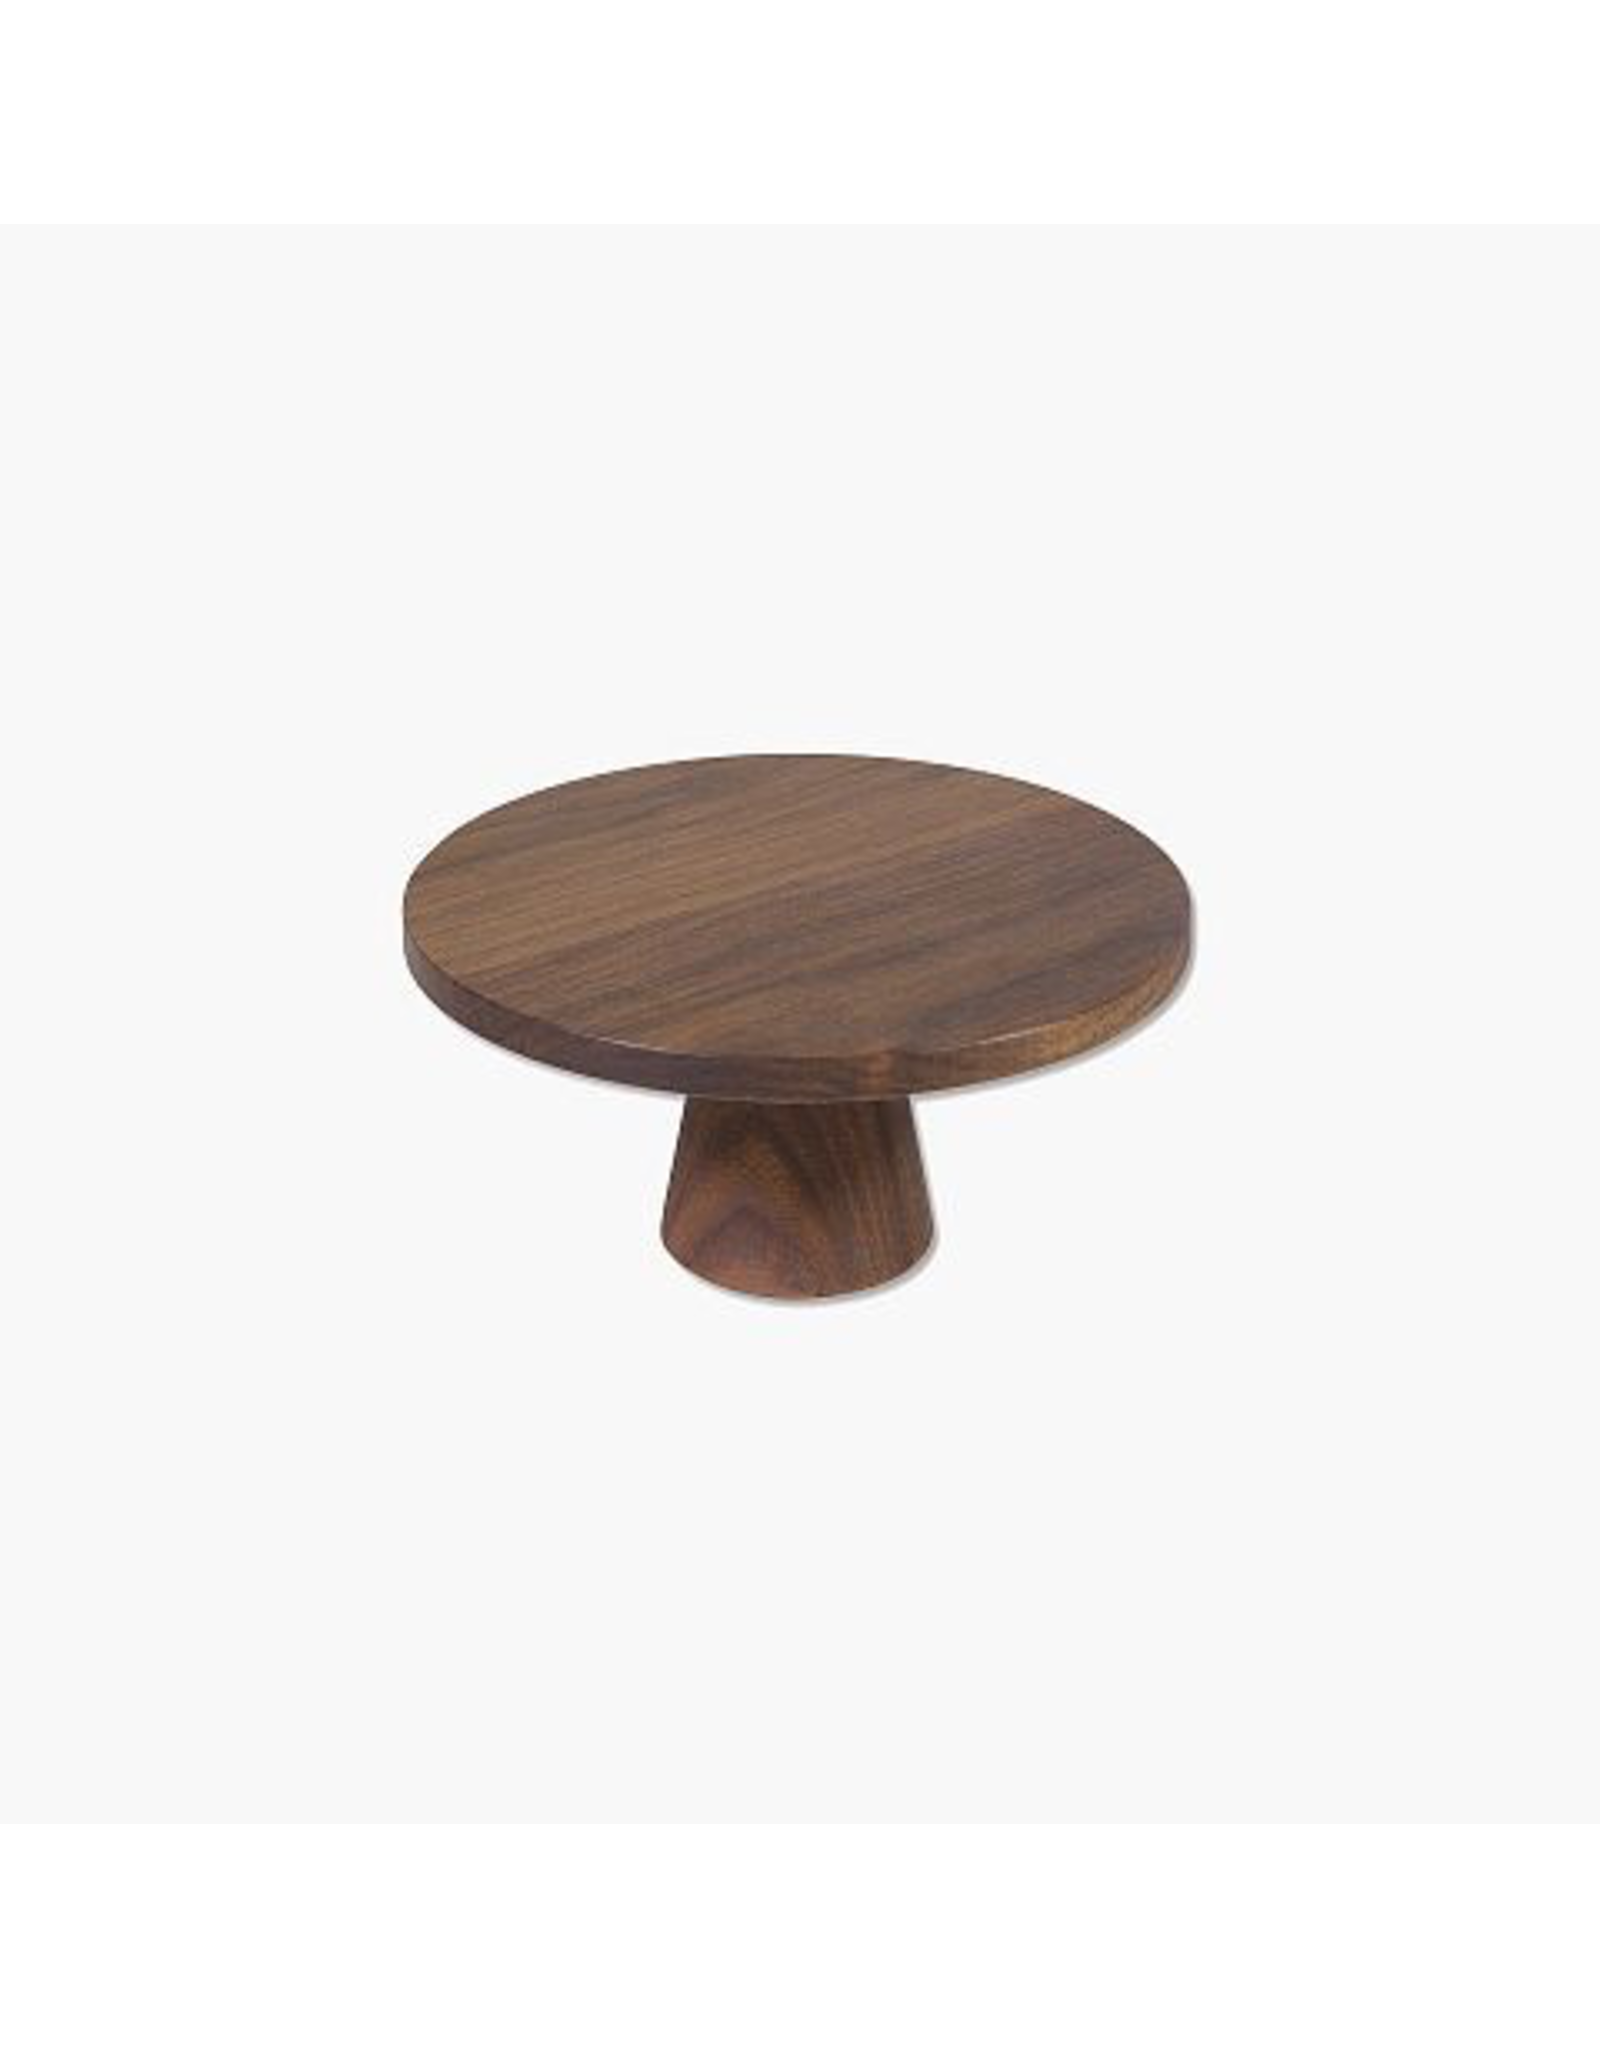 Dutchdeluxe FOOD STAND SOLID WALNUT OILED SMALL